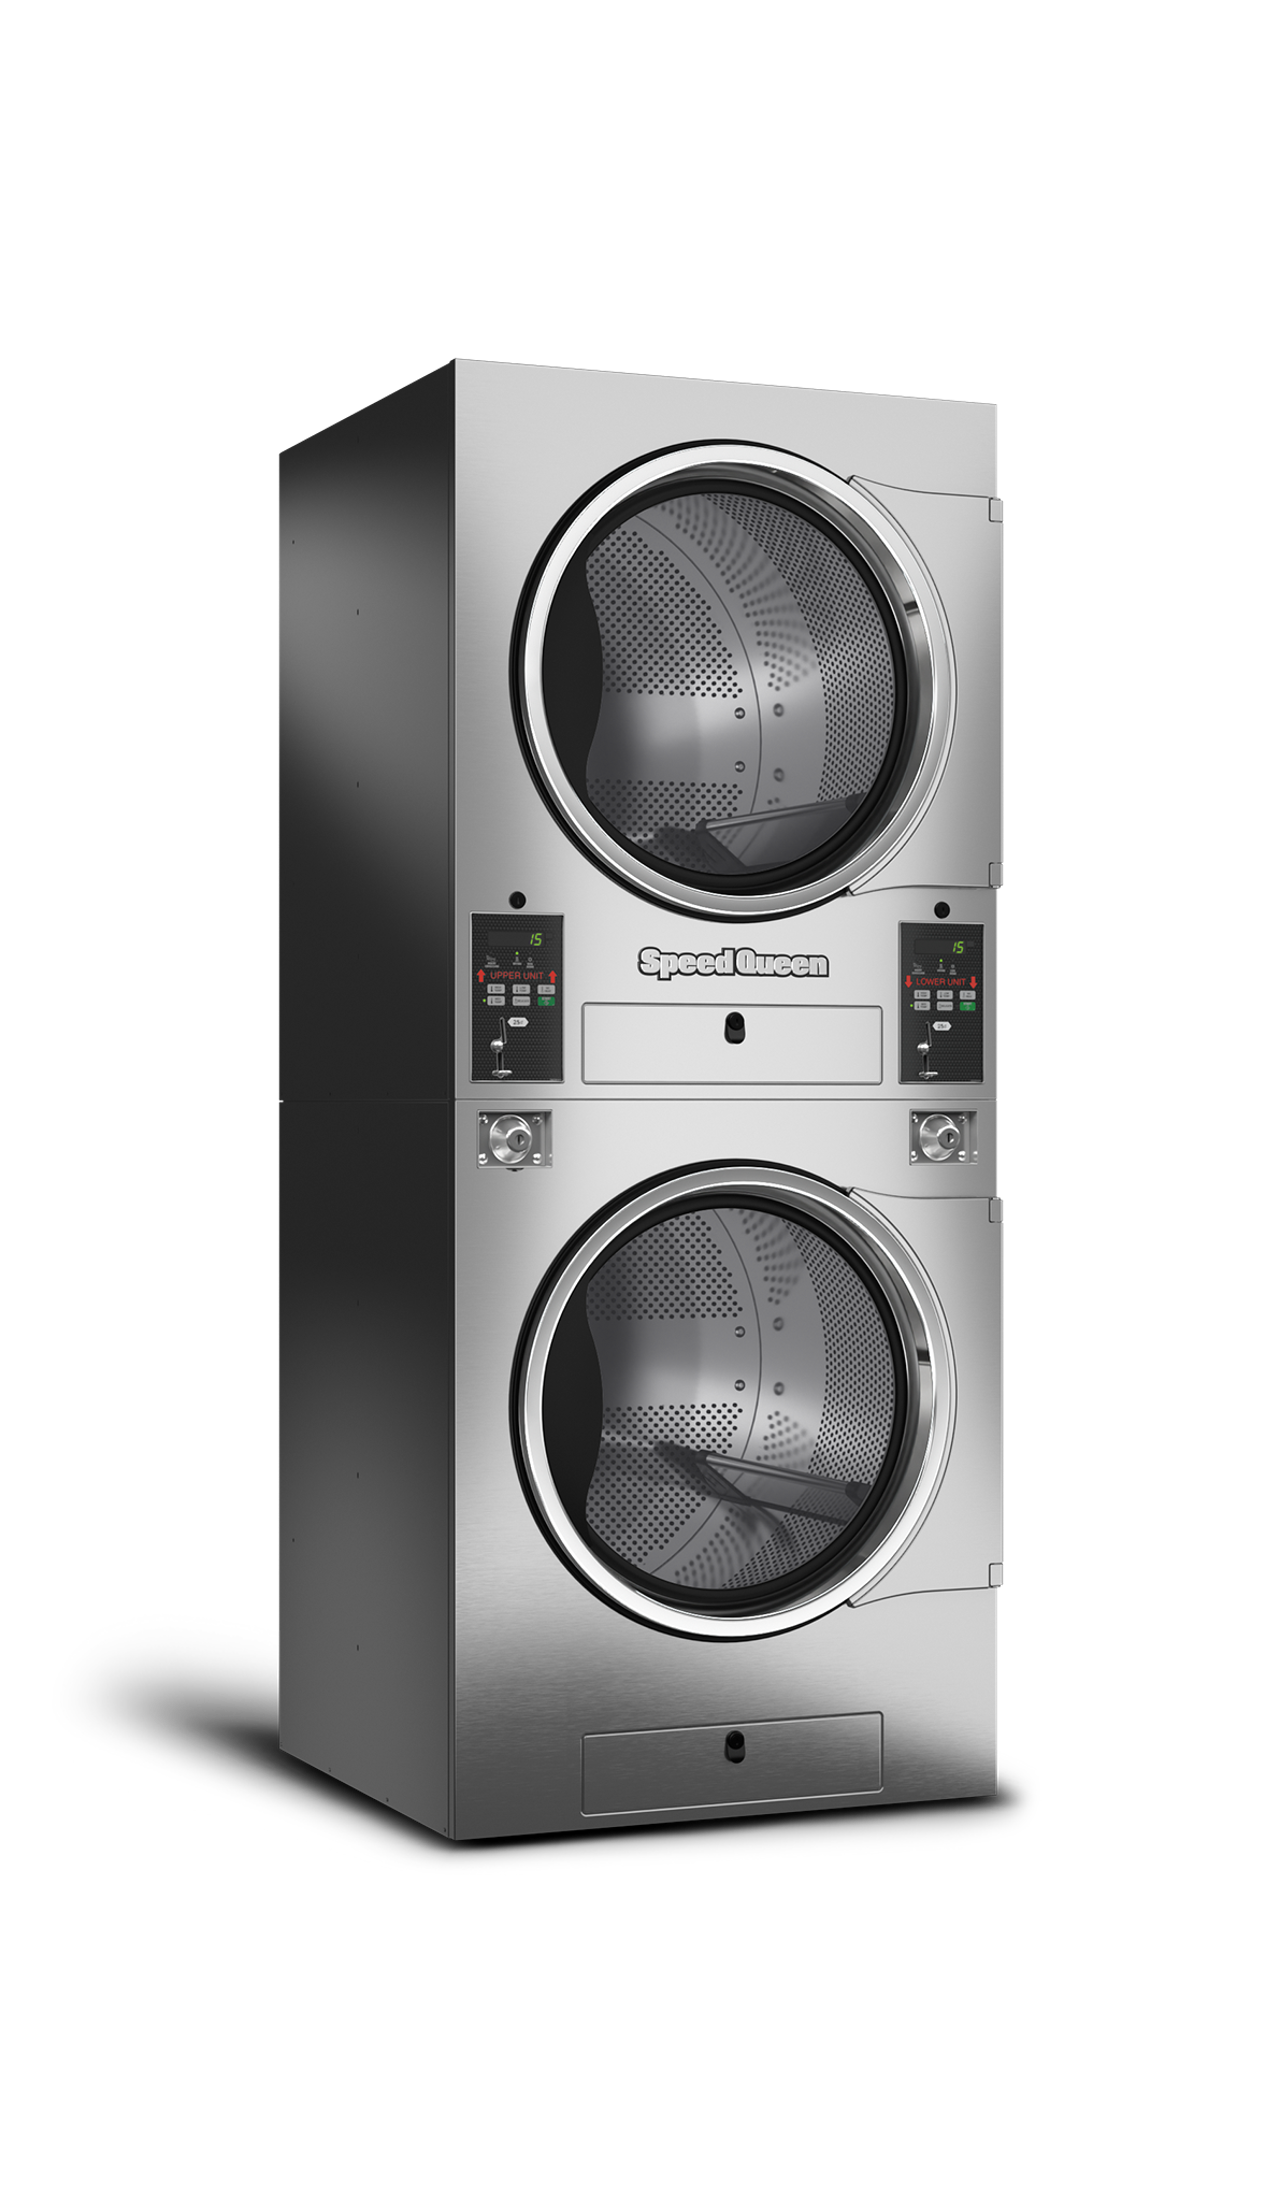 Speed Queen Gold Touch Stack Tumble Dryers